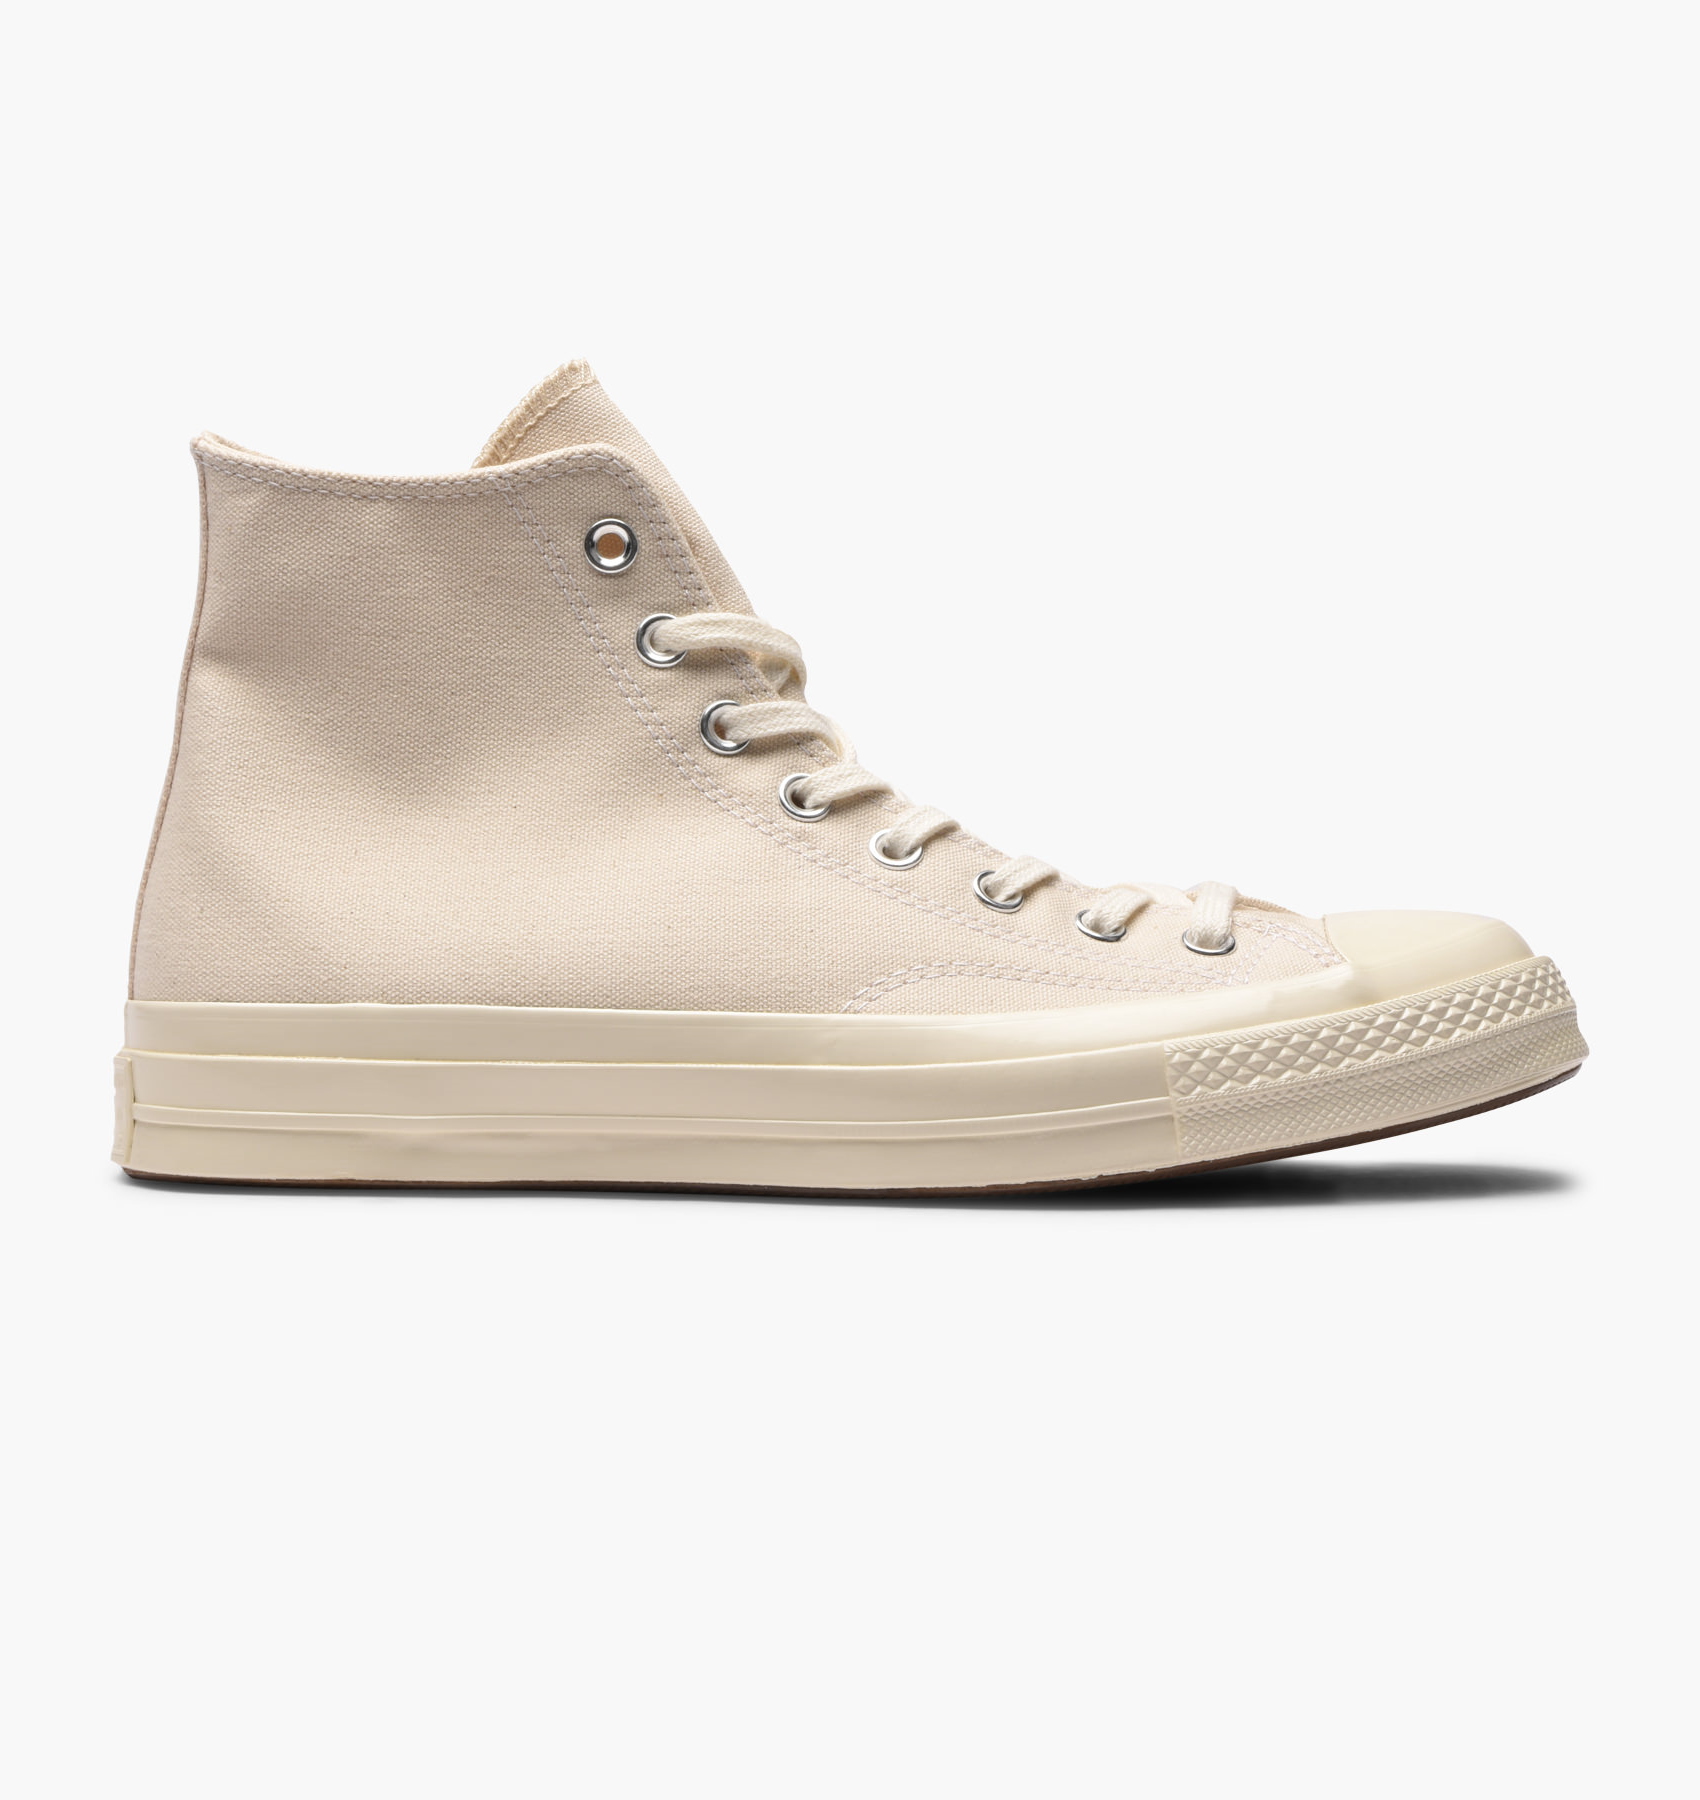 Converse Chuck Taylor All Star 70 Hi Mens